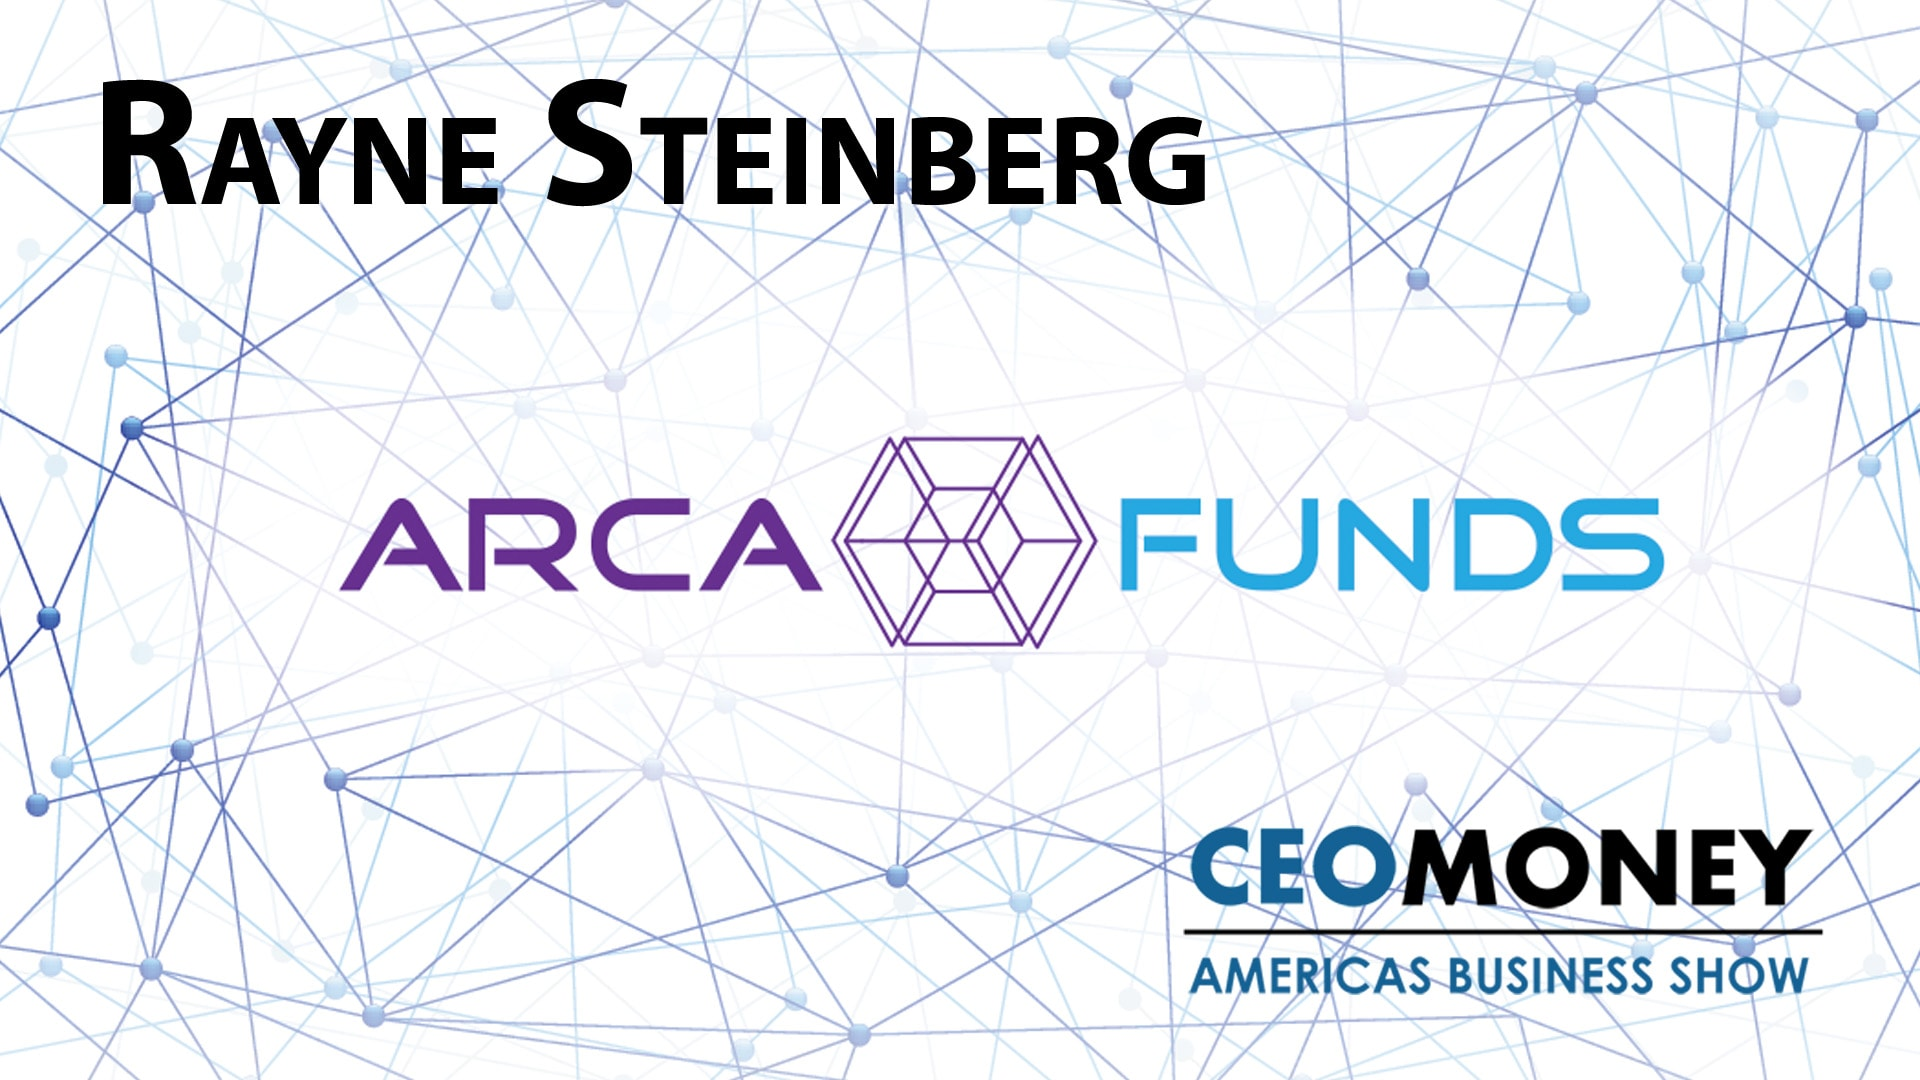 Arca is creating a new financial standard combining the best of traditional centralized finance with blockchain technology